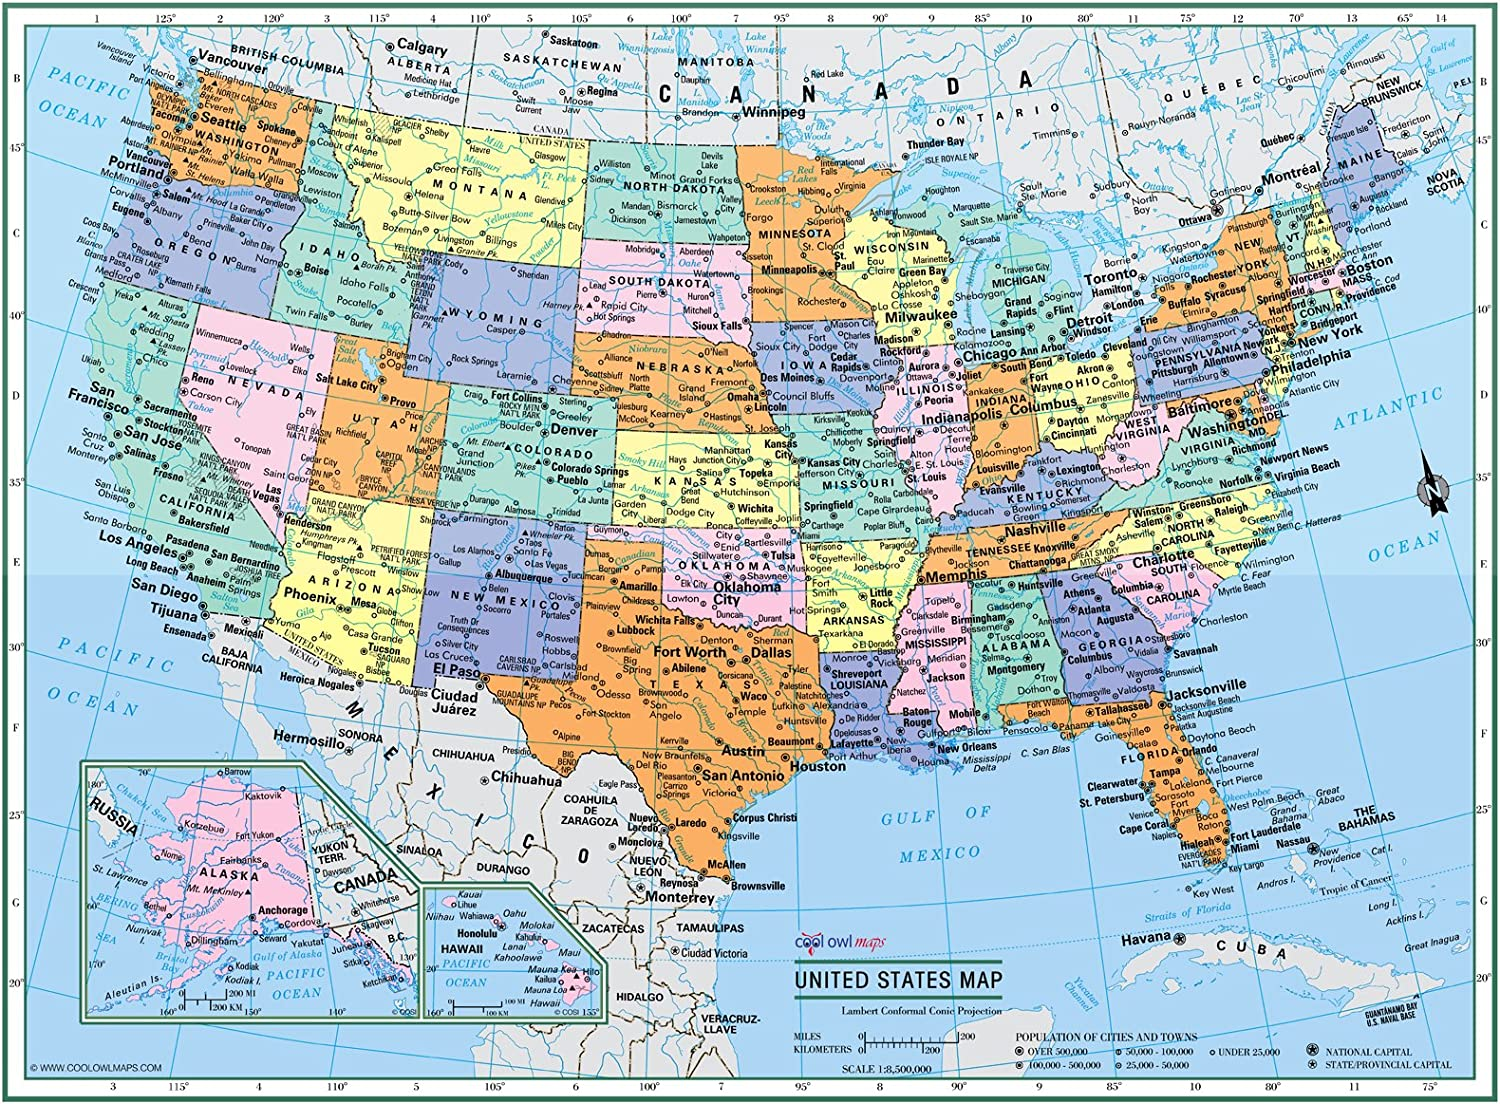 Amazon Com Cool Owl Maps United States Wall Map Political Usa Color Poster 32 X24 Large Type Rolled Paper 2020 Office Products